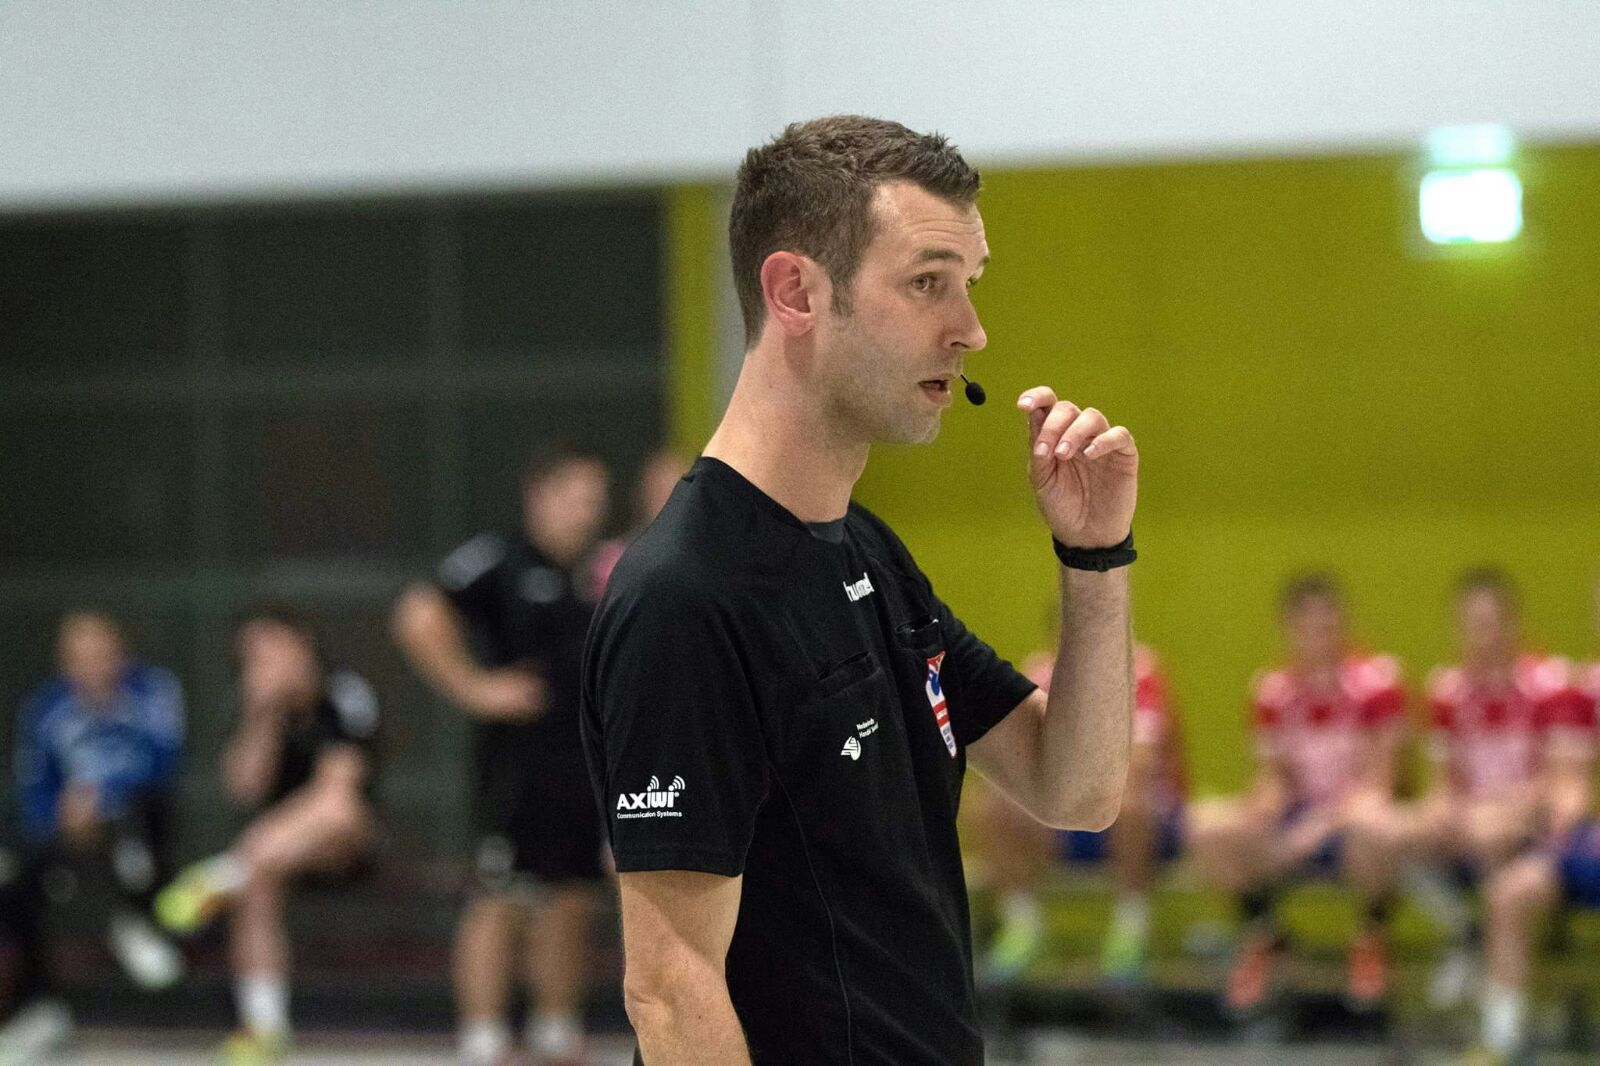 /wireless-communication-system-handball-dutch-referee-axiwi